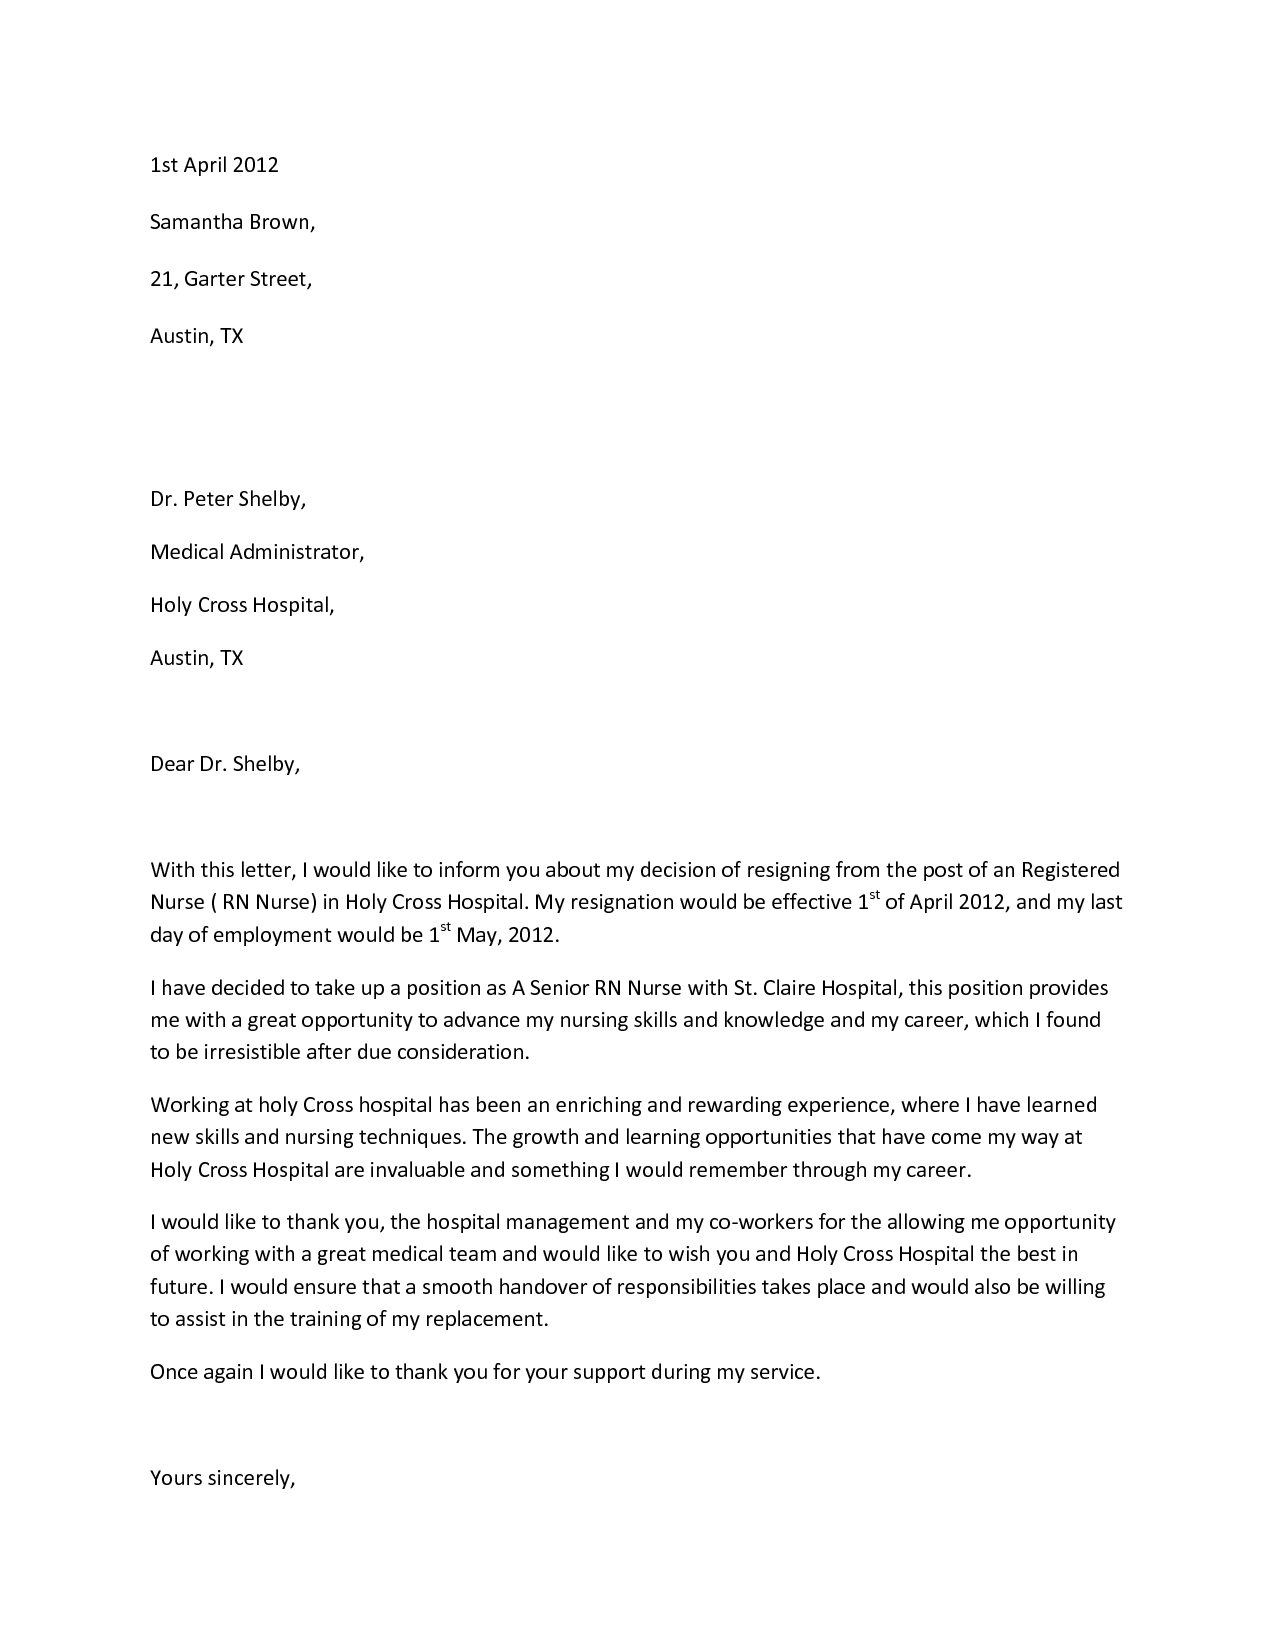 resignation letter contoh cover letter samples resumes resignation letter contoh resignation letter sample resignation letter writing tips letter of resignation resignation letter and